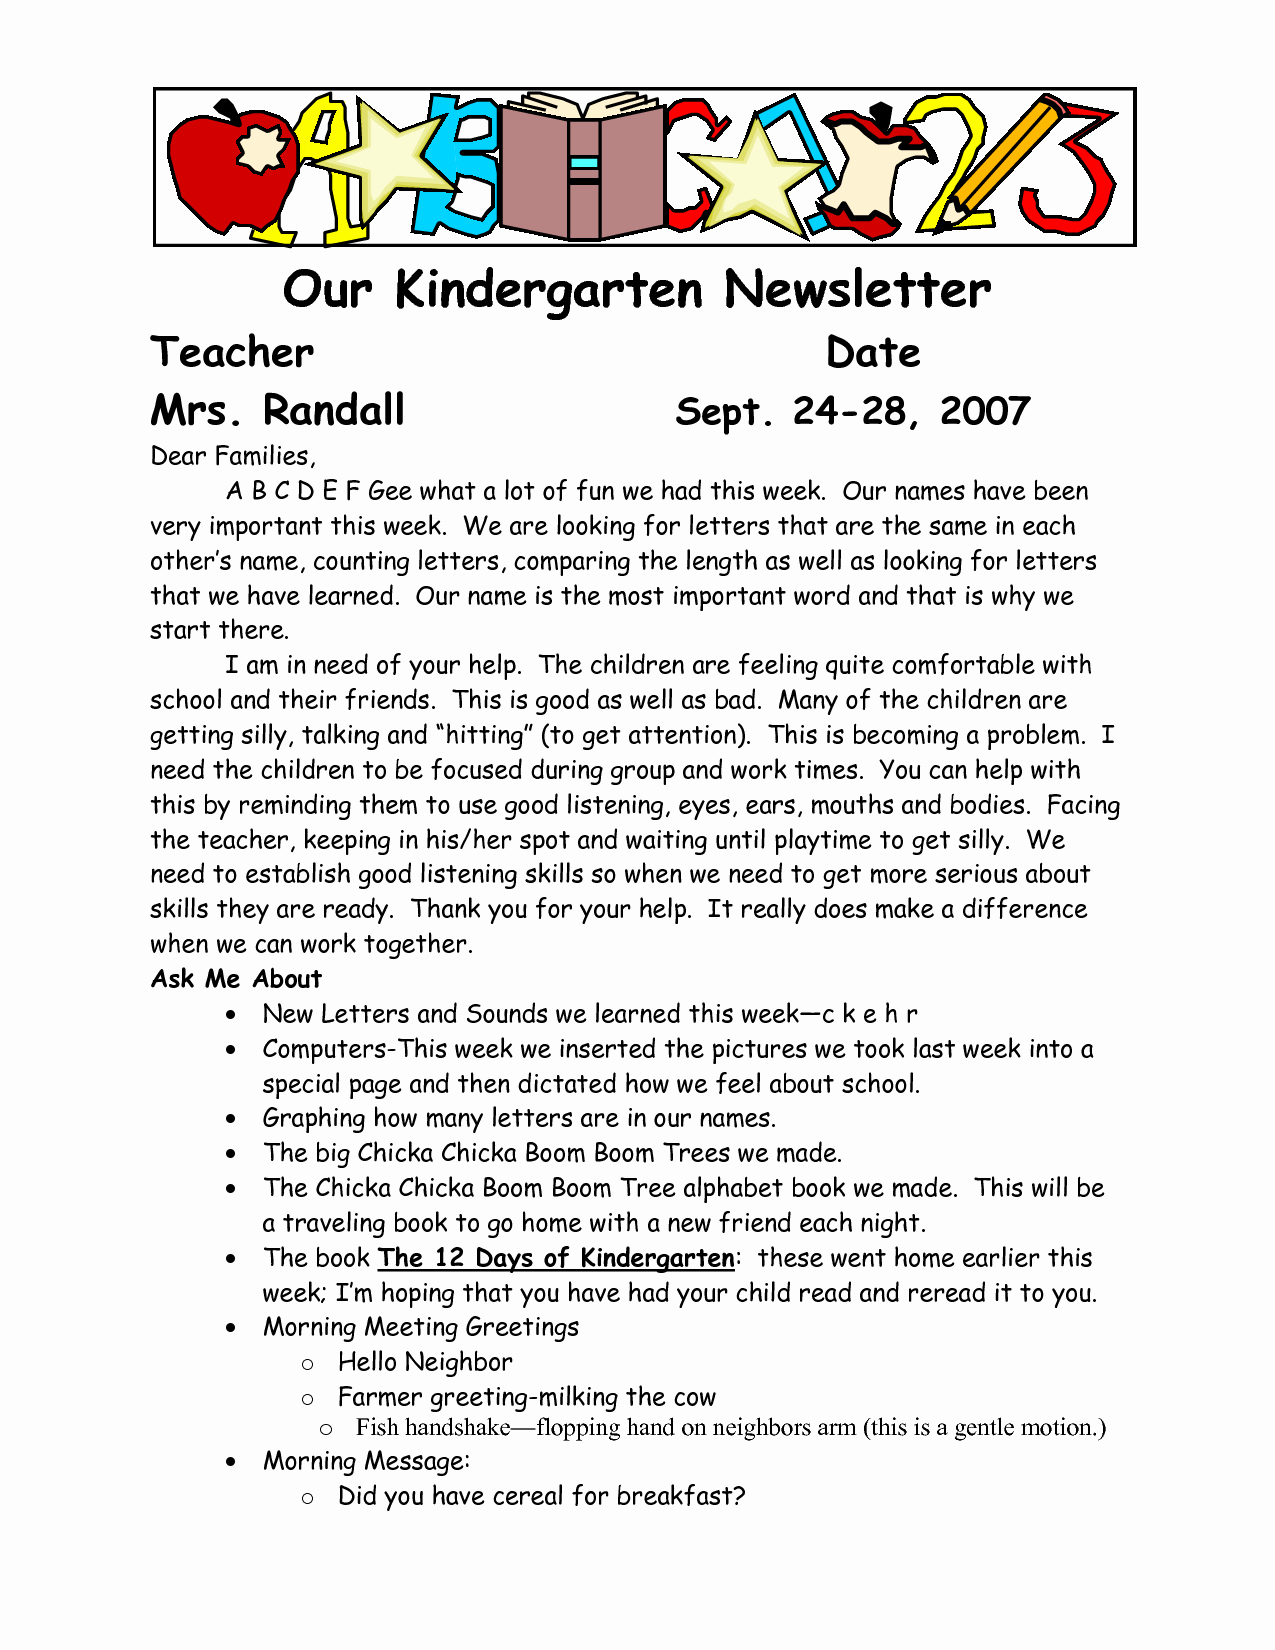 Newsletter for Parents From Teachers Awesome Sample Wel E to Kindergarten Letters